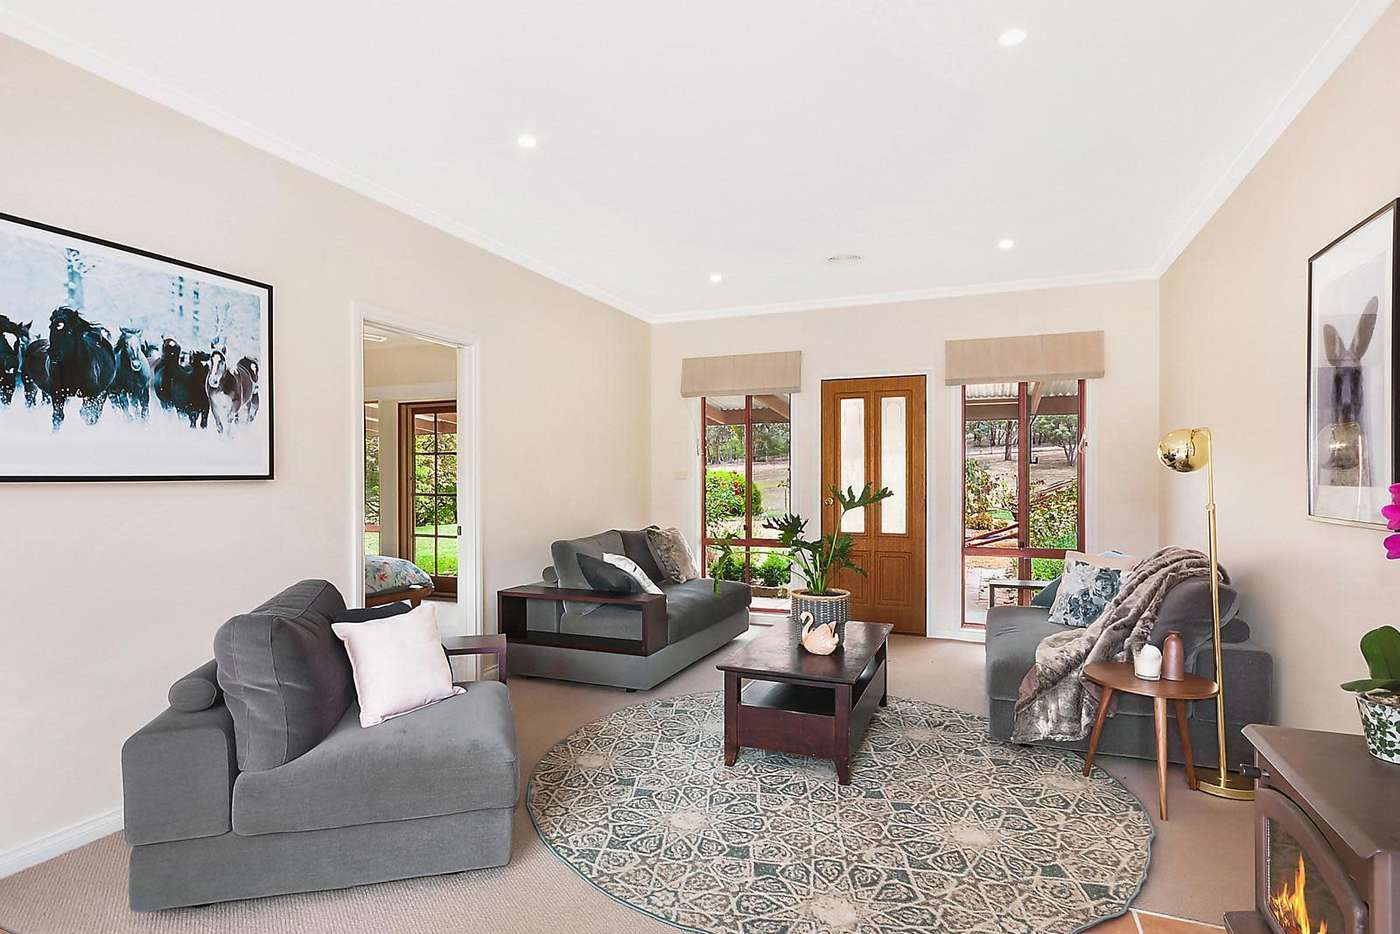 Sixth view of Homely house listing, 457 Marked Tree Road, Gundaroo NSW 2620